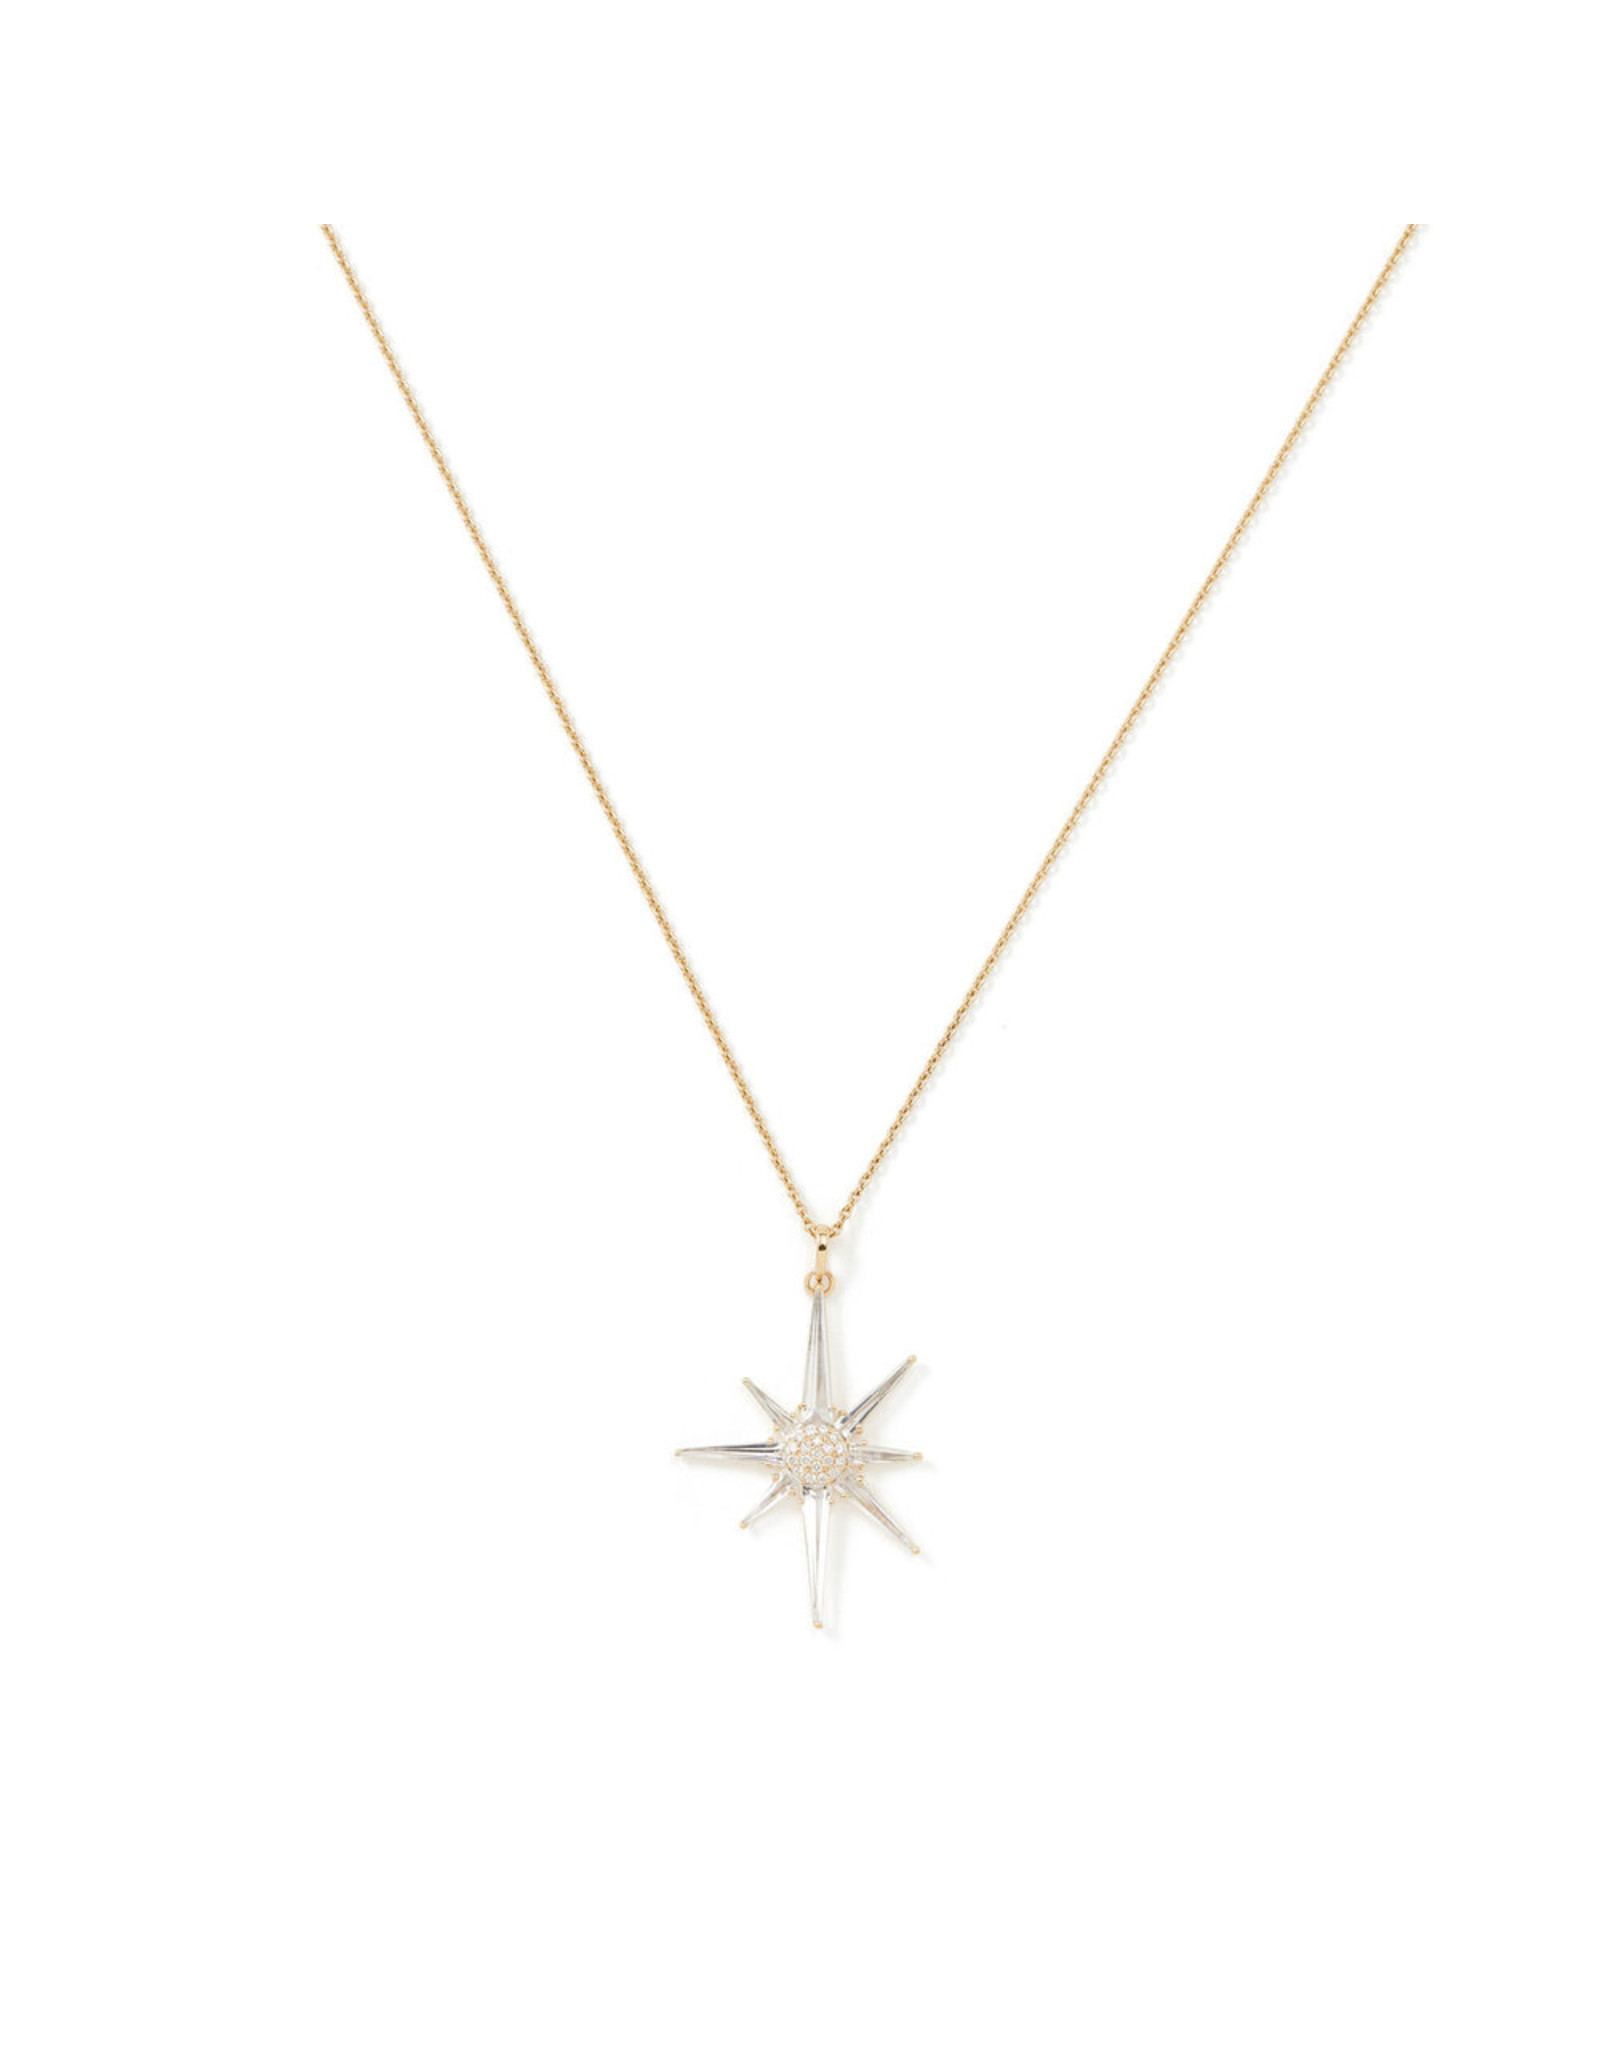 Bondeye Jewelry Bondeye Astraea White Topaz Necklace - Yellow Gold